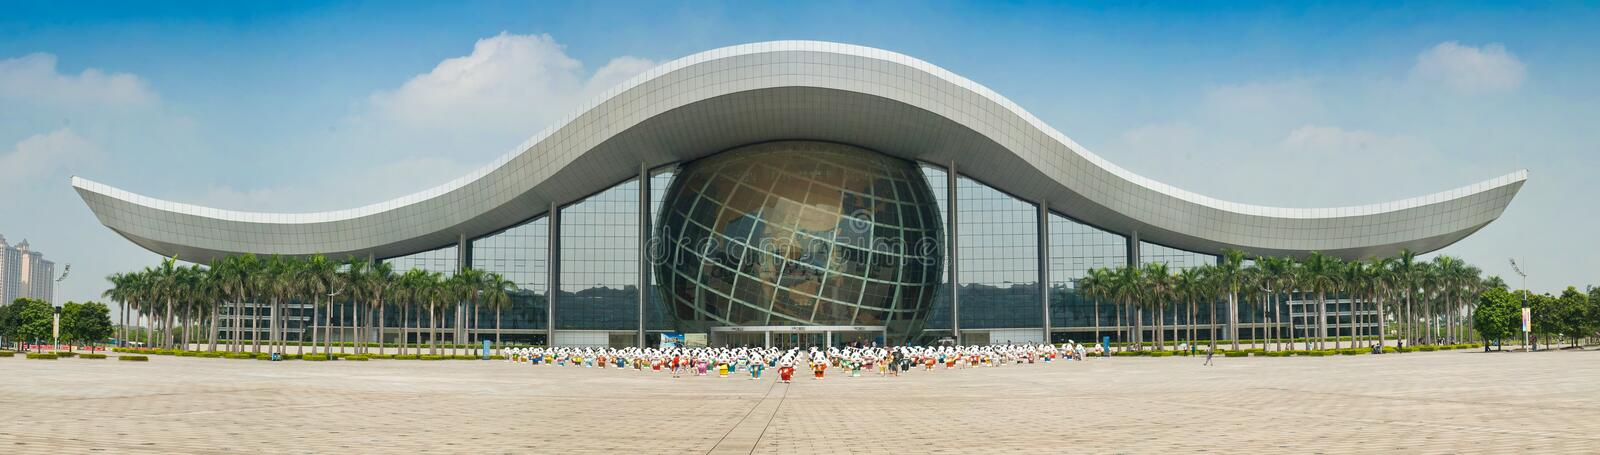 Guangdong science center stock images